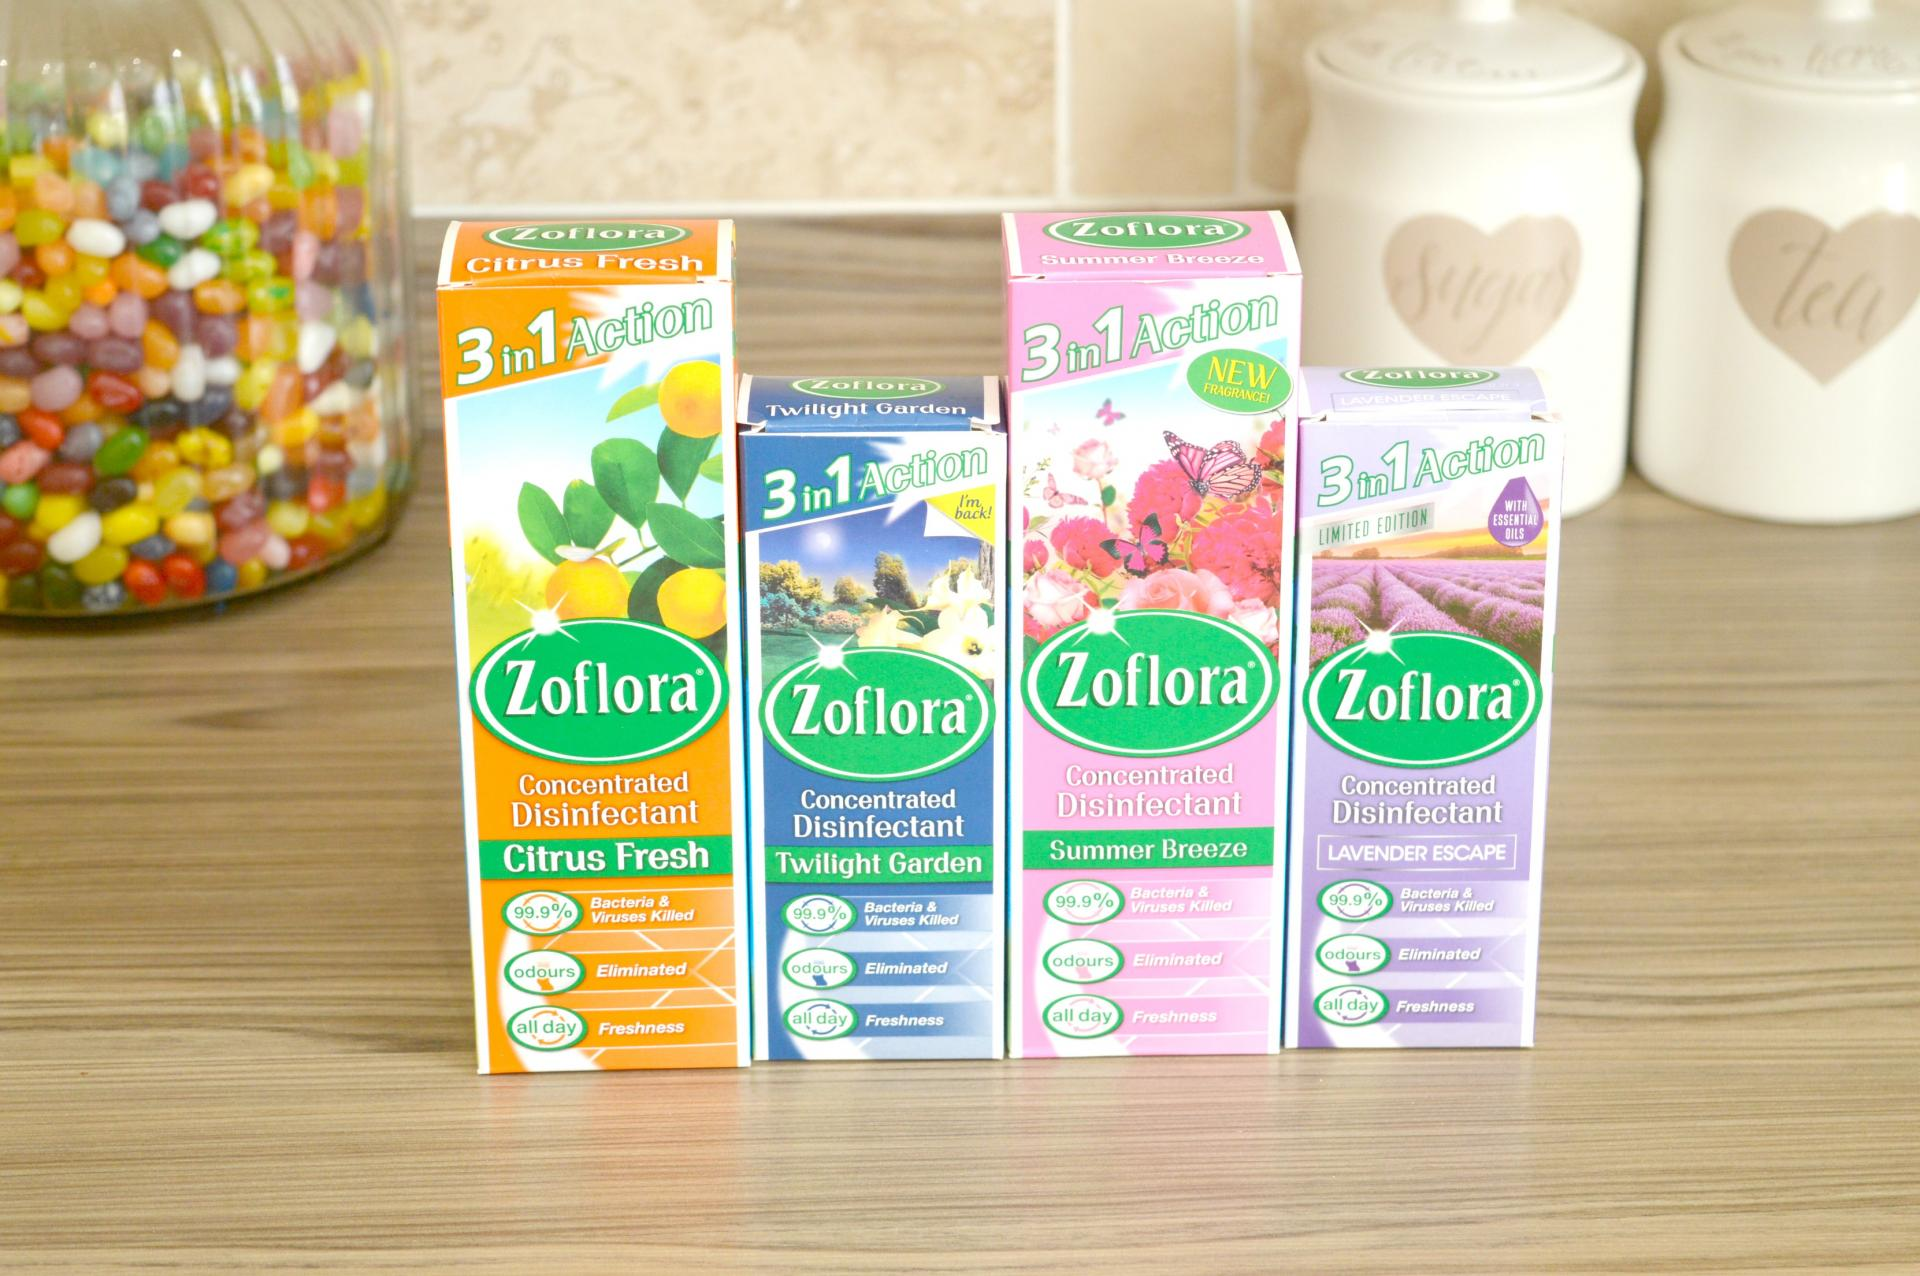 4 Really Exciting Zoflora Scents I Tested Recently - Citrus Fresh, Twilight Garden, Summer Breeze and Lavender Escape